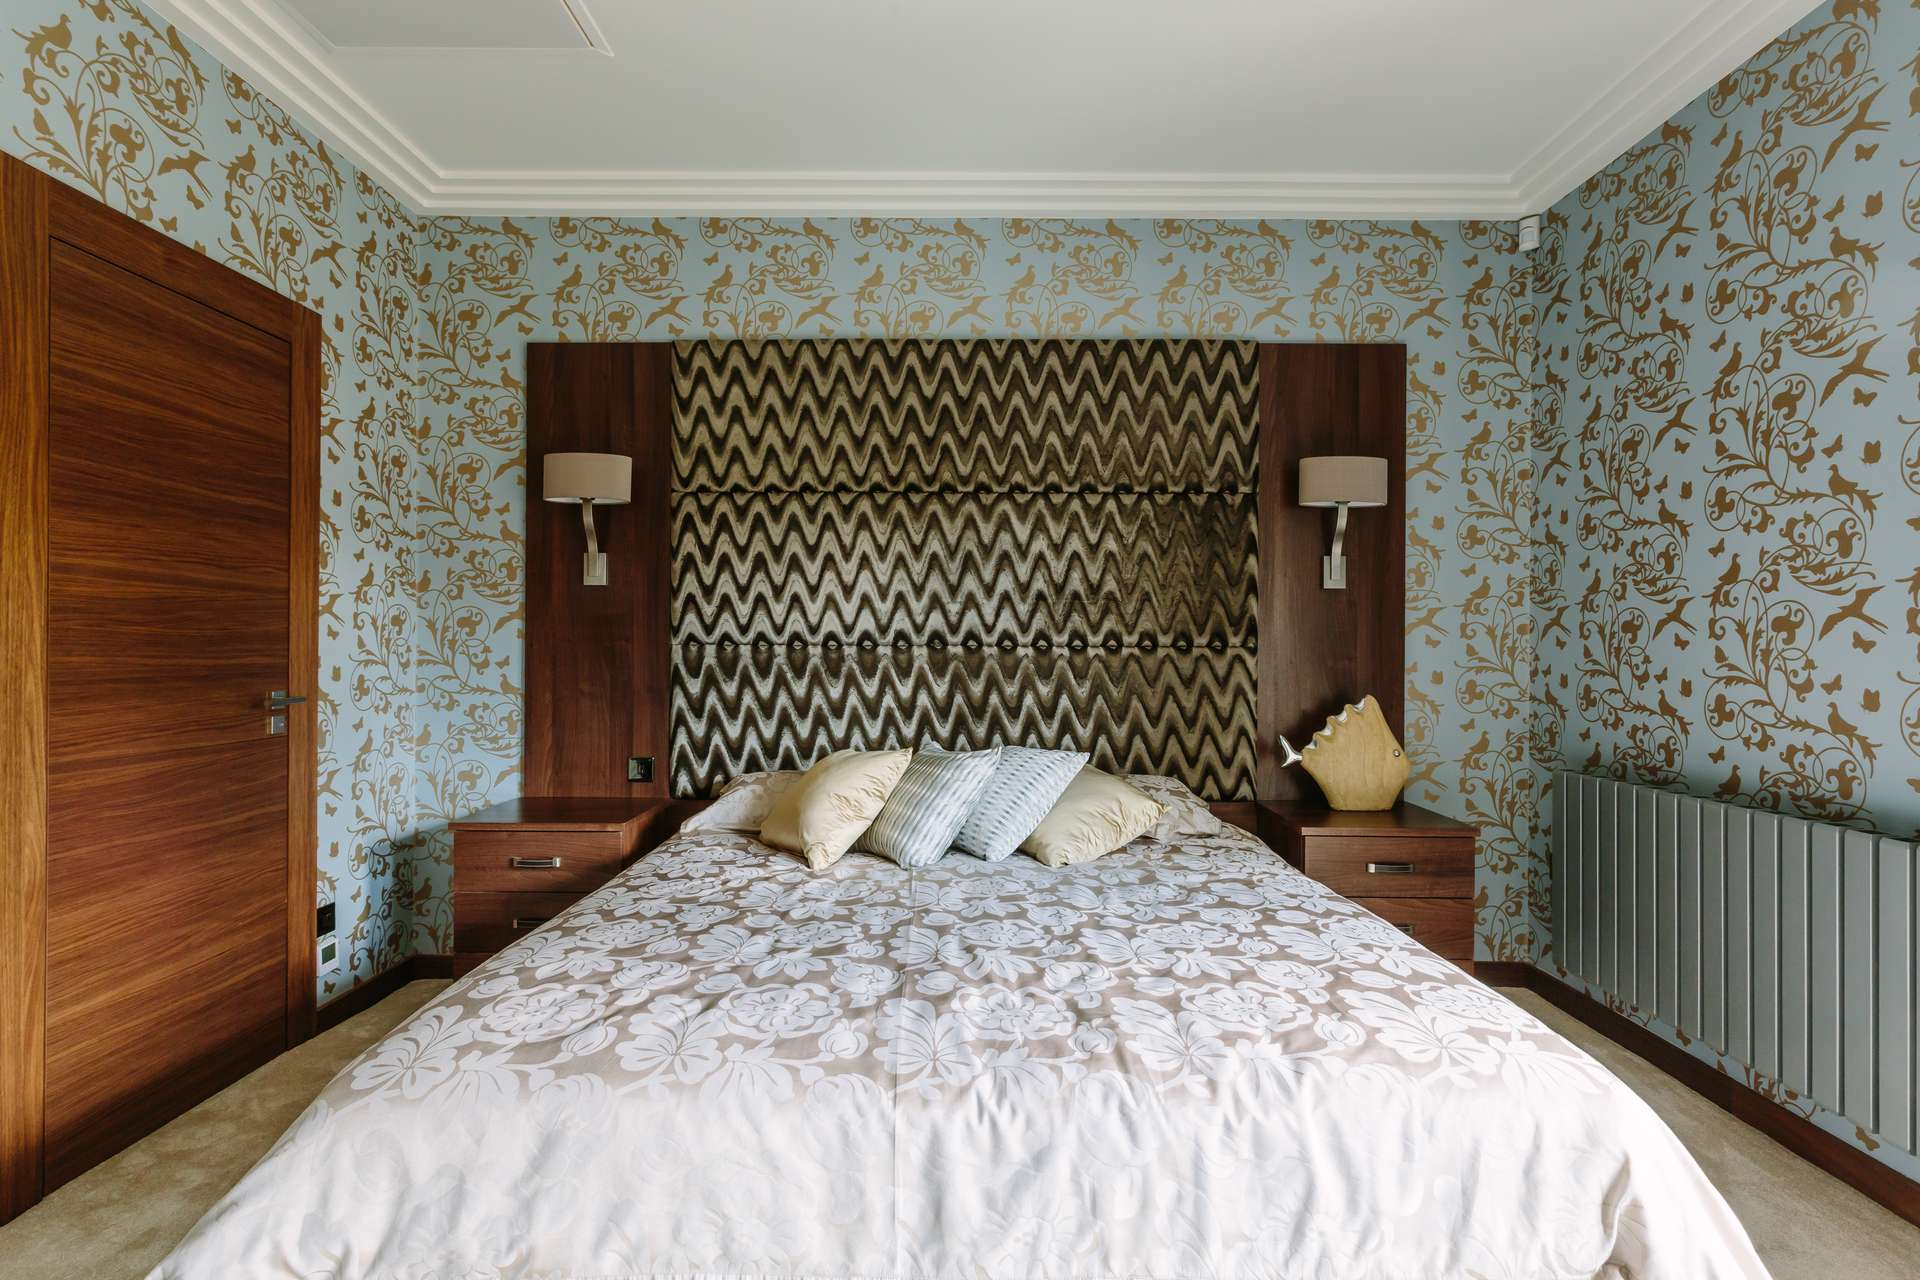 Made to measure furniture - Fitted bedhead with bedsides and material headboard